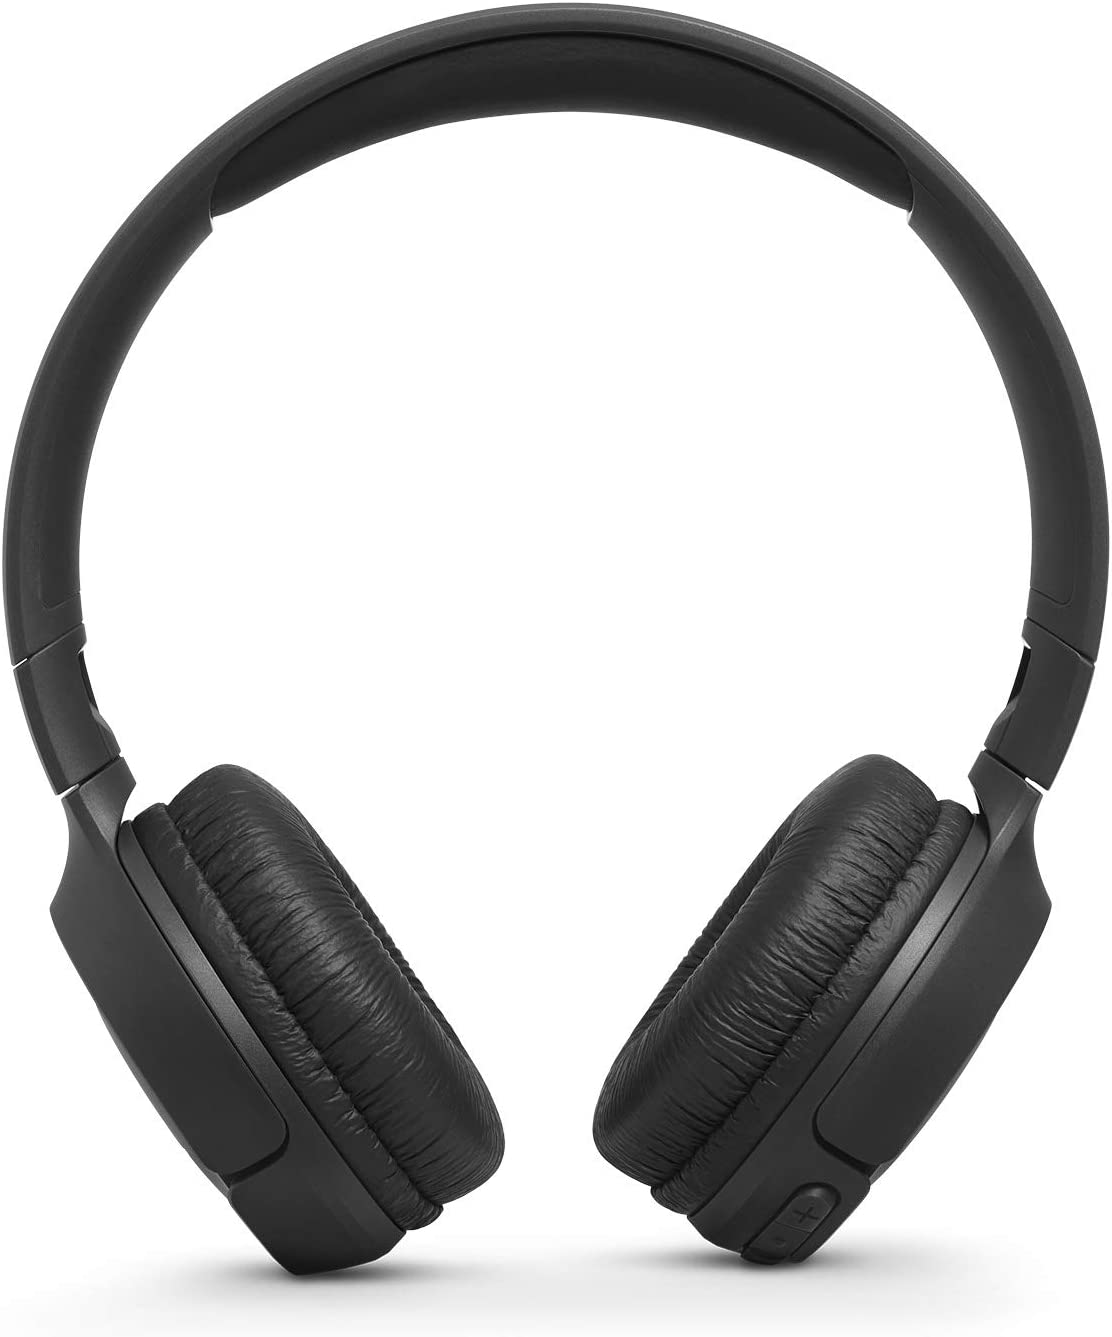 Amazon Com Jbl Tune 500bt Wireless On Ear Bluetooth Headphones With Microphone Wireless Headset Up To 16 Hour Battery Works With Android And Apple Ios Black Electronics